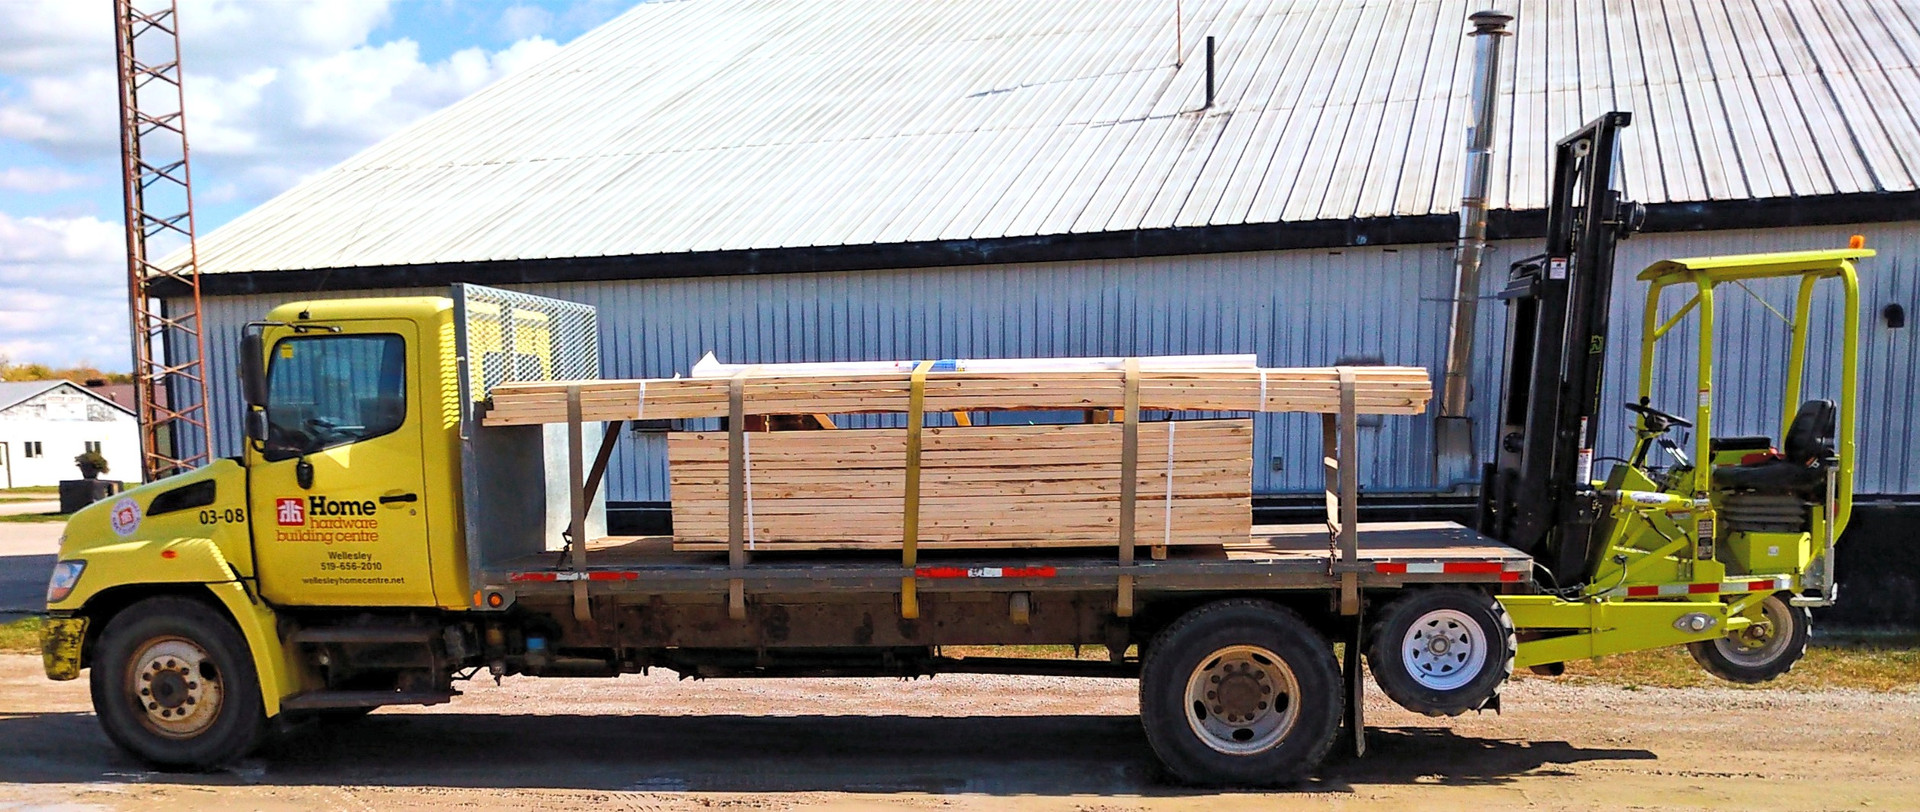 Donkey Truck Carried Forklifts